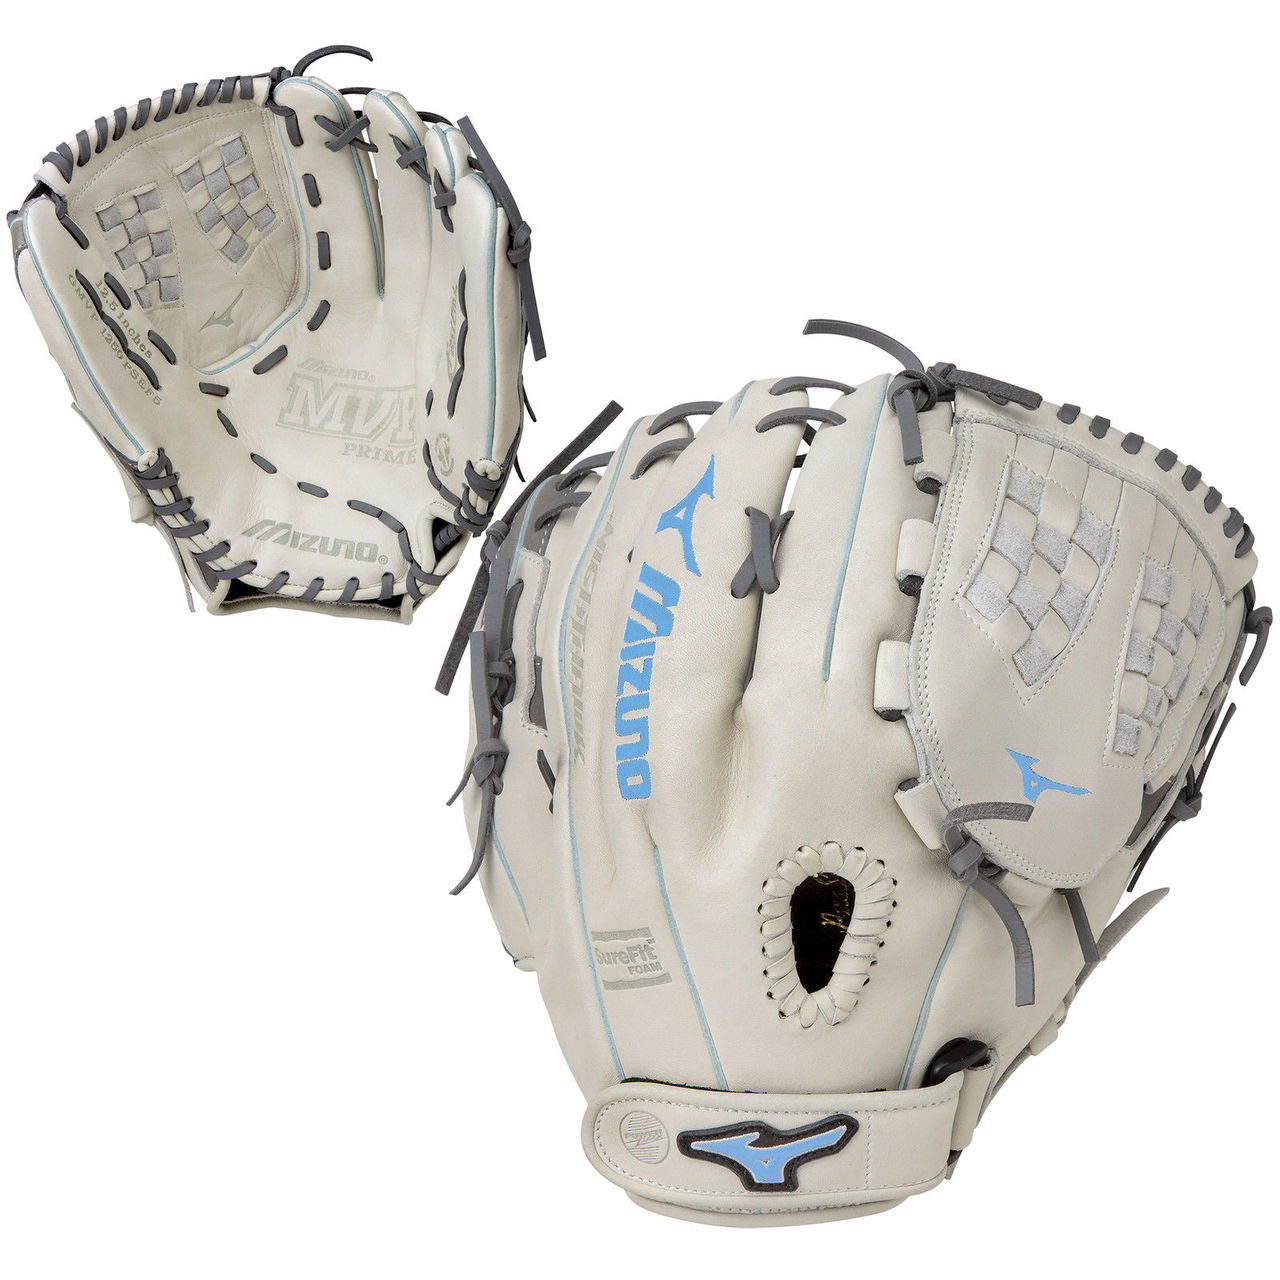 mizuno-mvp-prime-se-12-5-gmvp1250psef5-fastpitch-softball-glove-silver-grey-blue-right-hand-throw GMVP1250PSEF5-SIGRBL-RightHandThrow Mizuno 889961059797 The MVP Prime SE fastpitch softball series gloves feature a Center